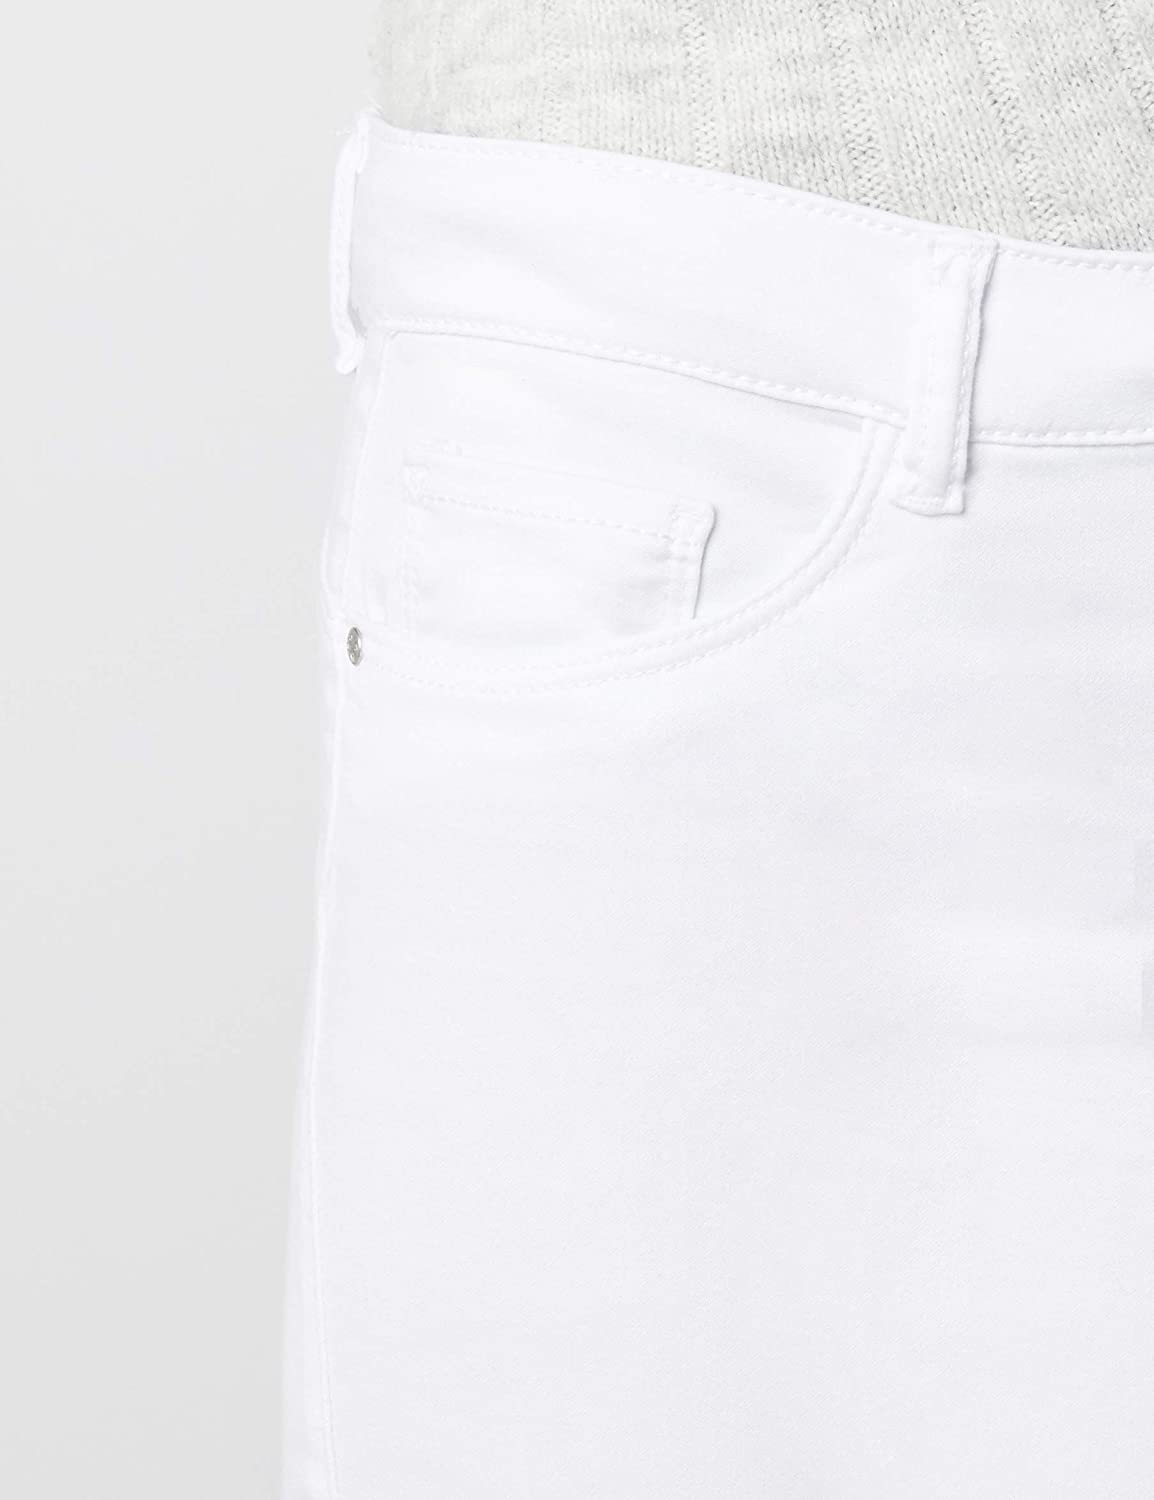 f09e924c651ca3 Vero Moda Women's Vmseven Nw S Shape Up Jeans White Noos Slim:  Amazon.co.uk: Clothing